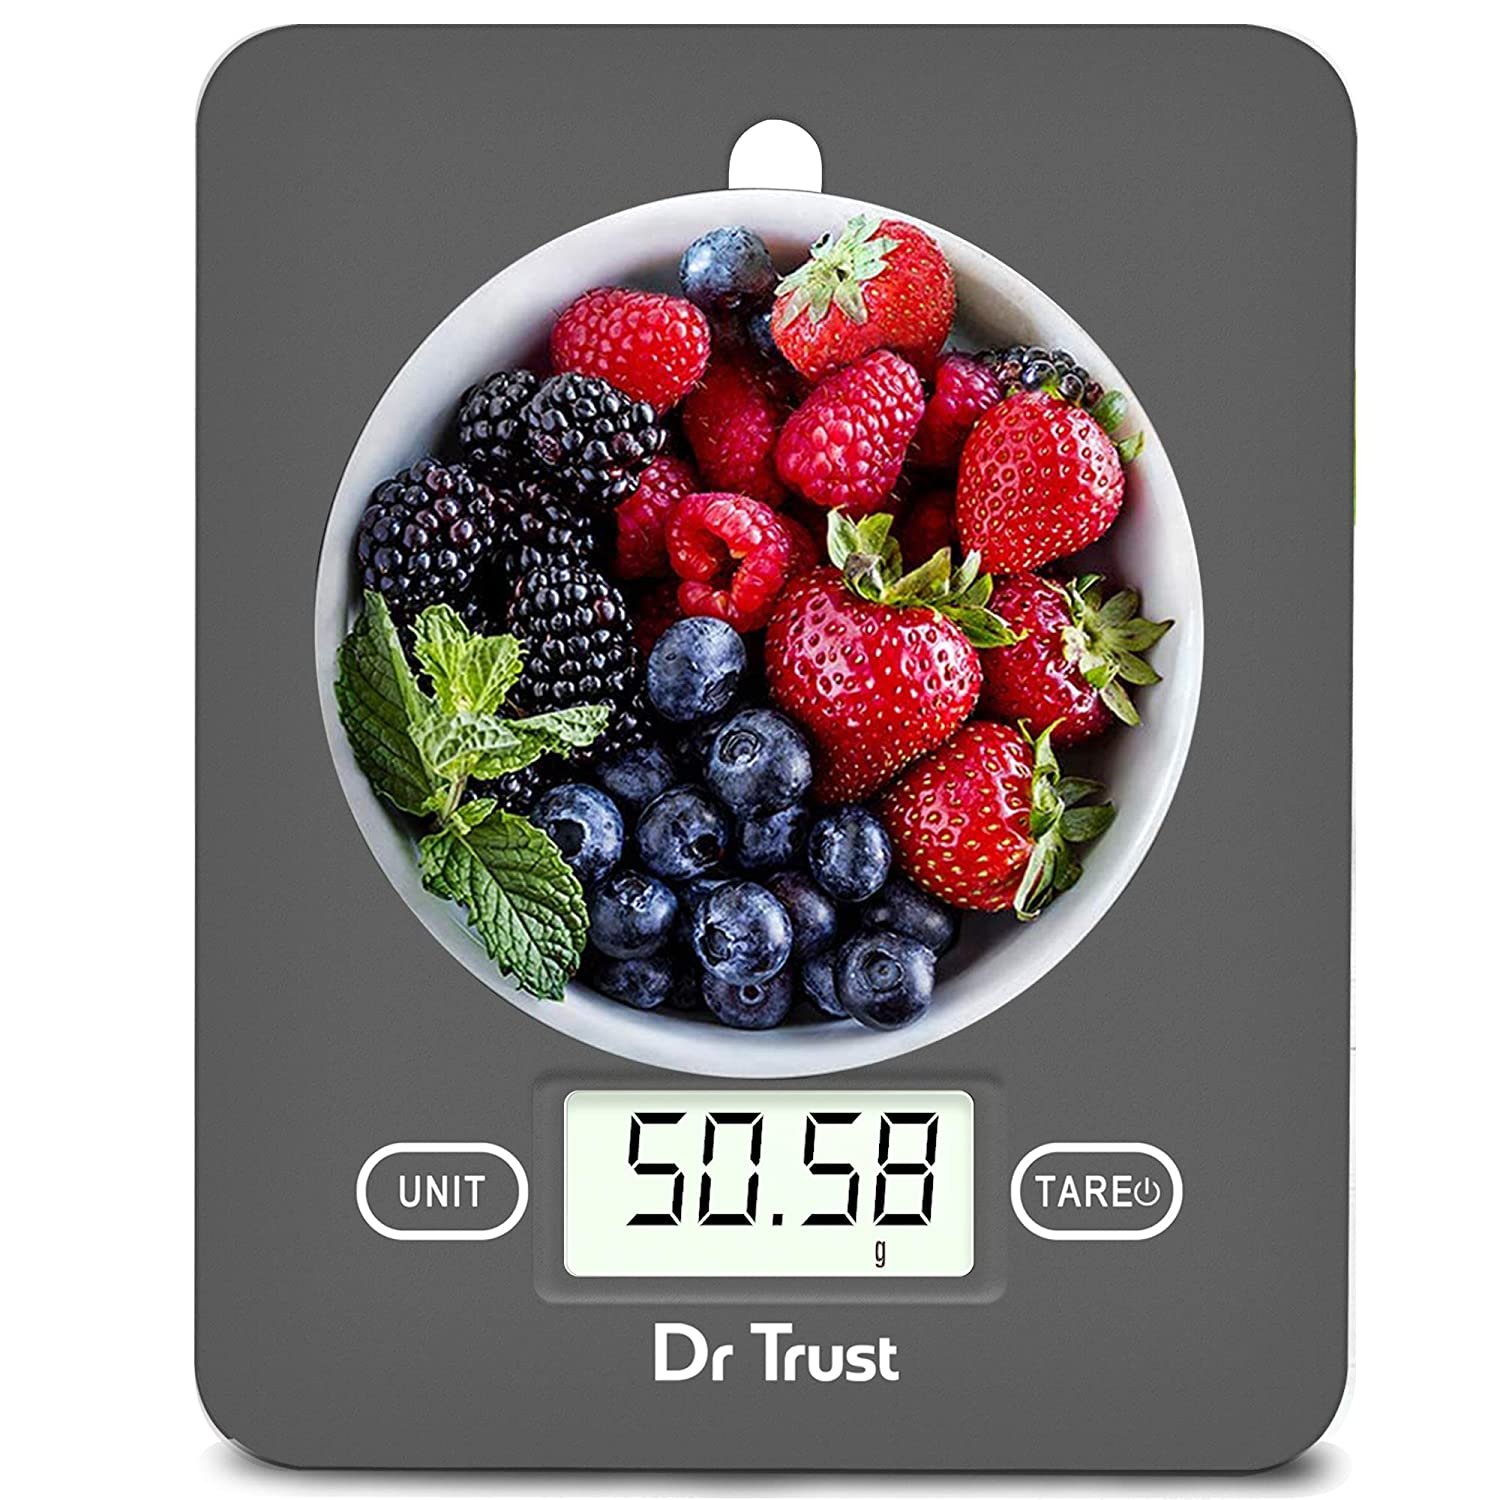 Dr Trust (USA) Electronic Kitchen Digital Scale Weighing Machine